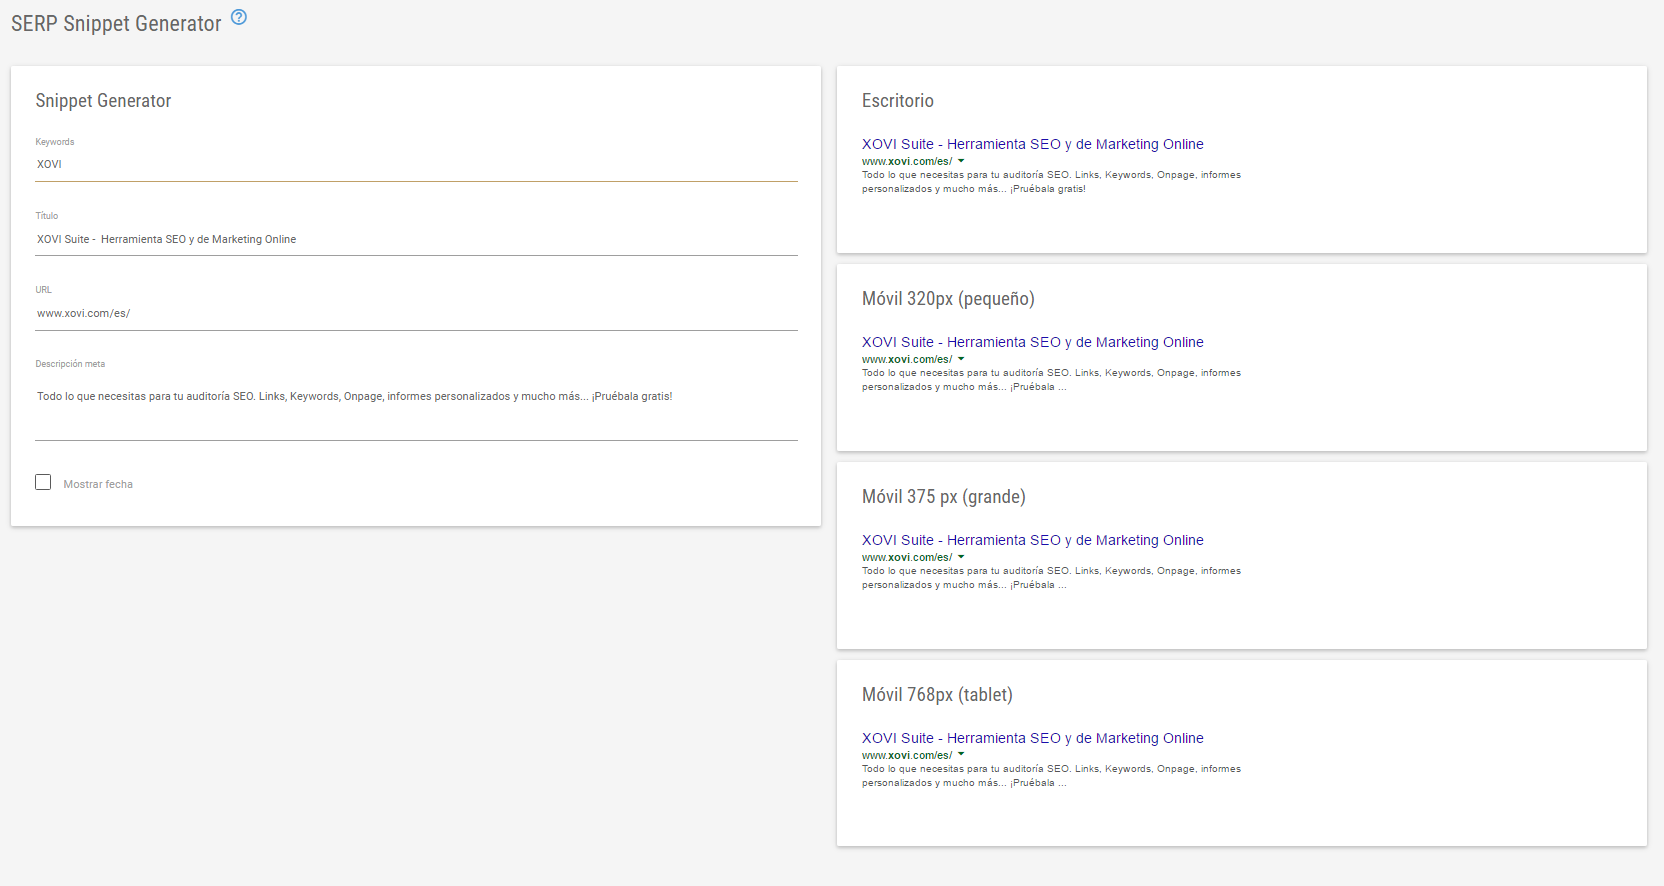 Website relaunch Serp Snippet Generator